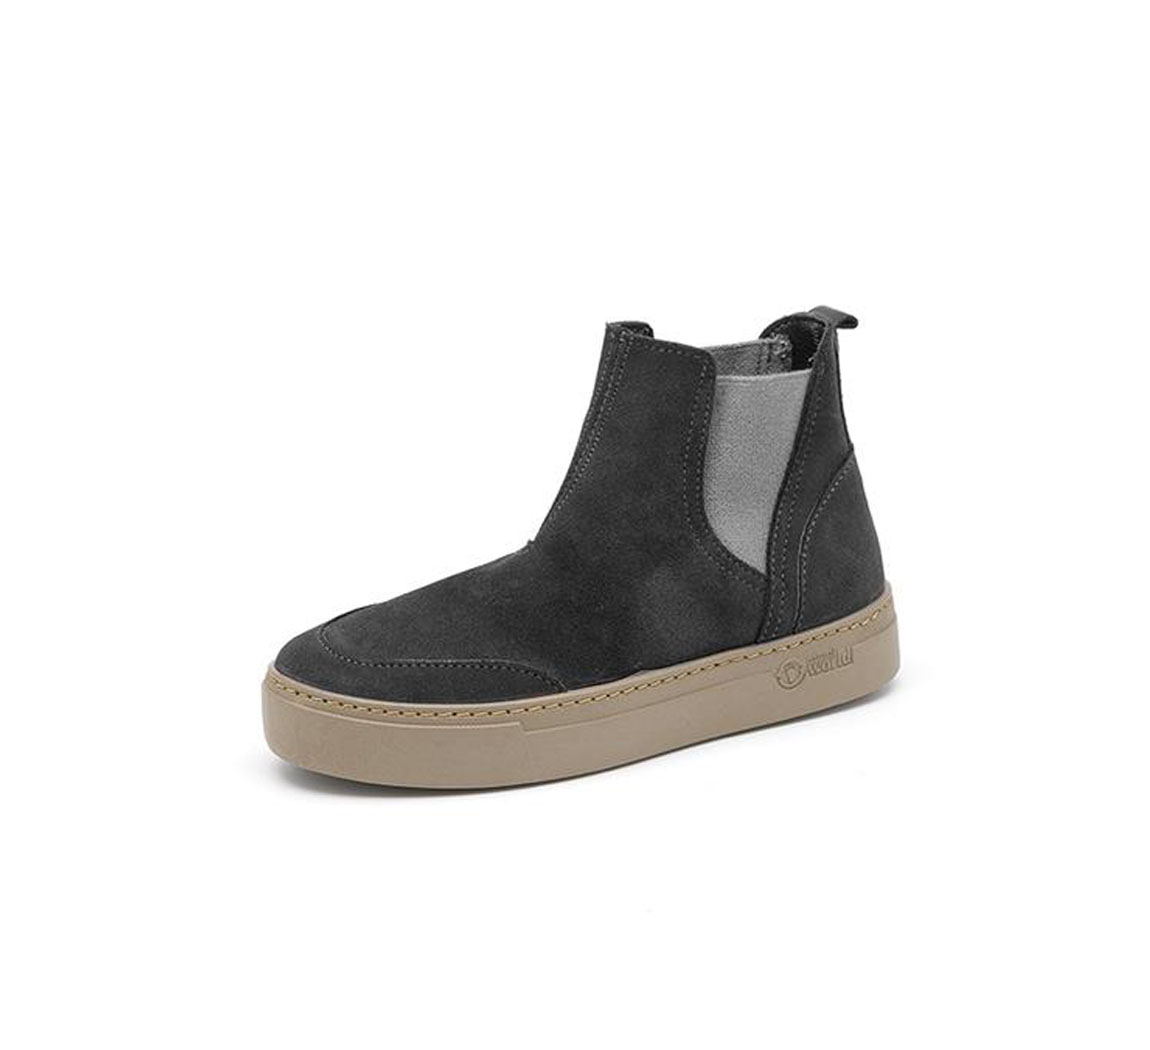 Chaussure femme Chelsea elast suede